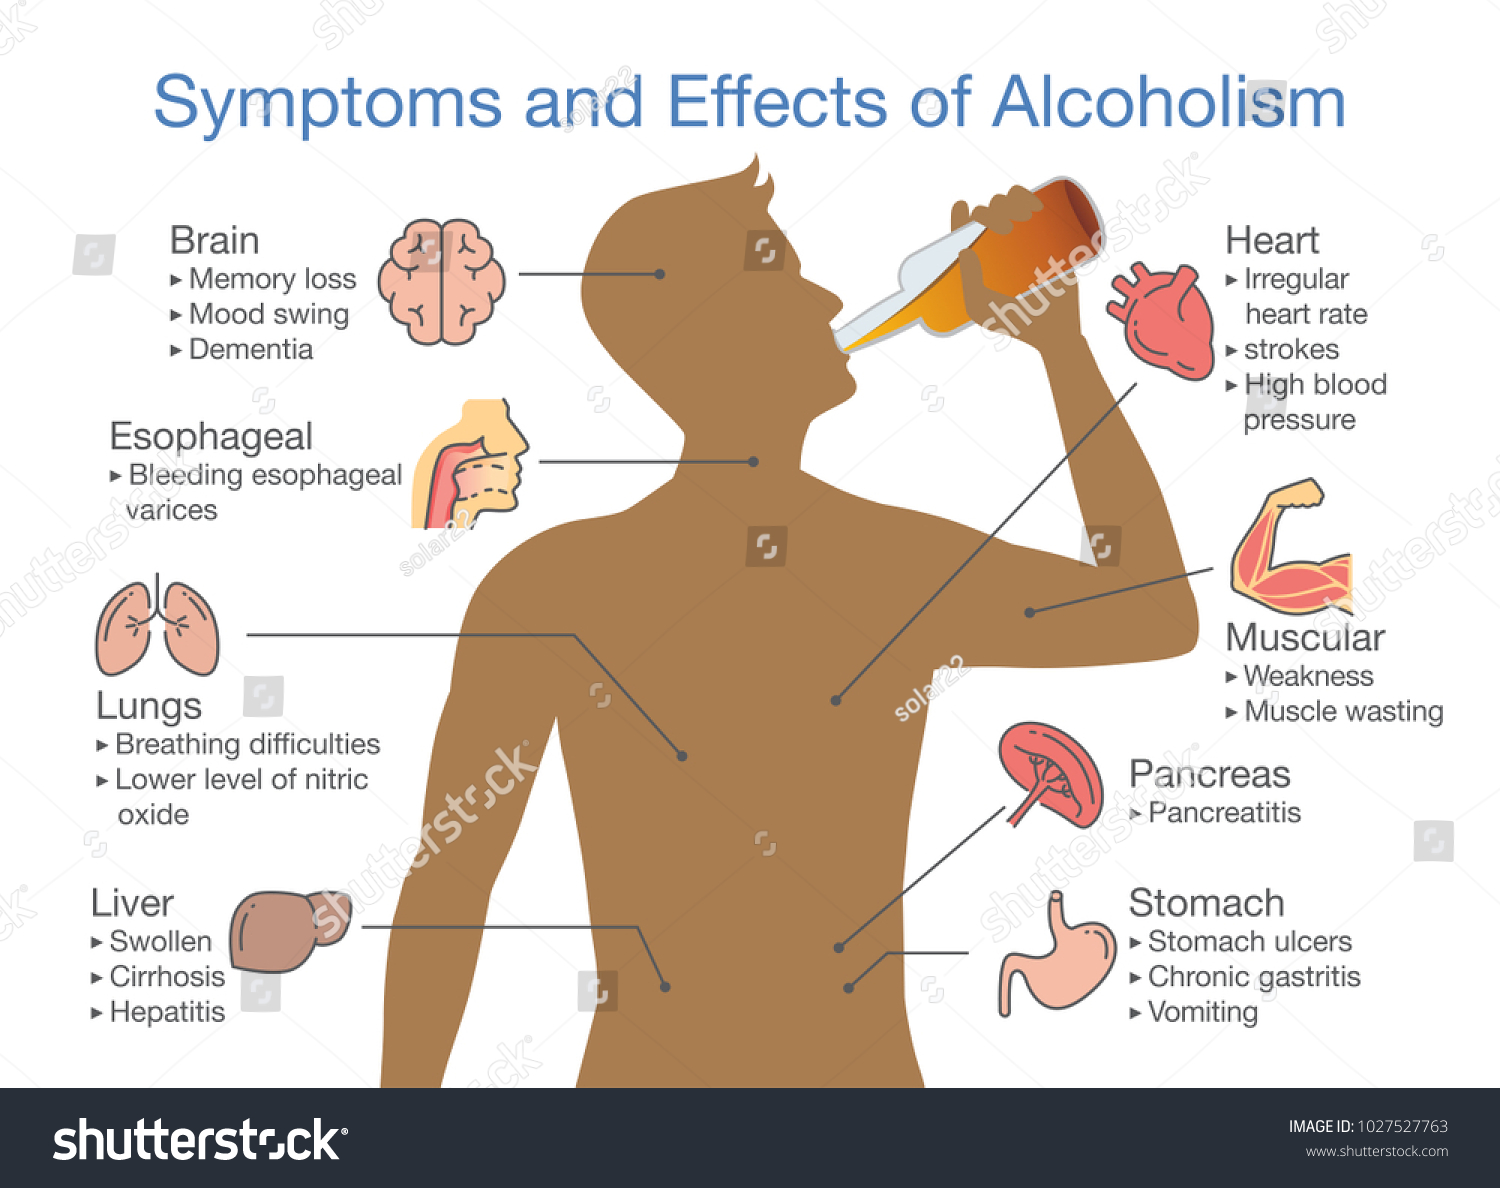 Symptoms and effects of alcoholism patient. Illustration about health problem of people with alcohol addiction.